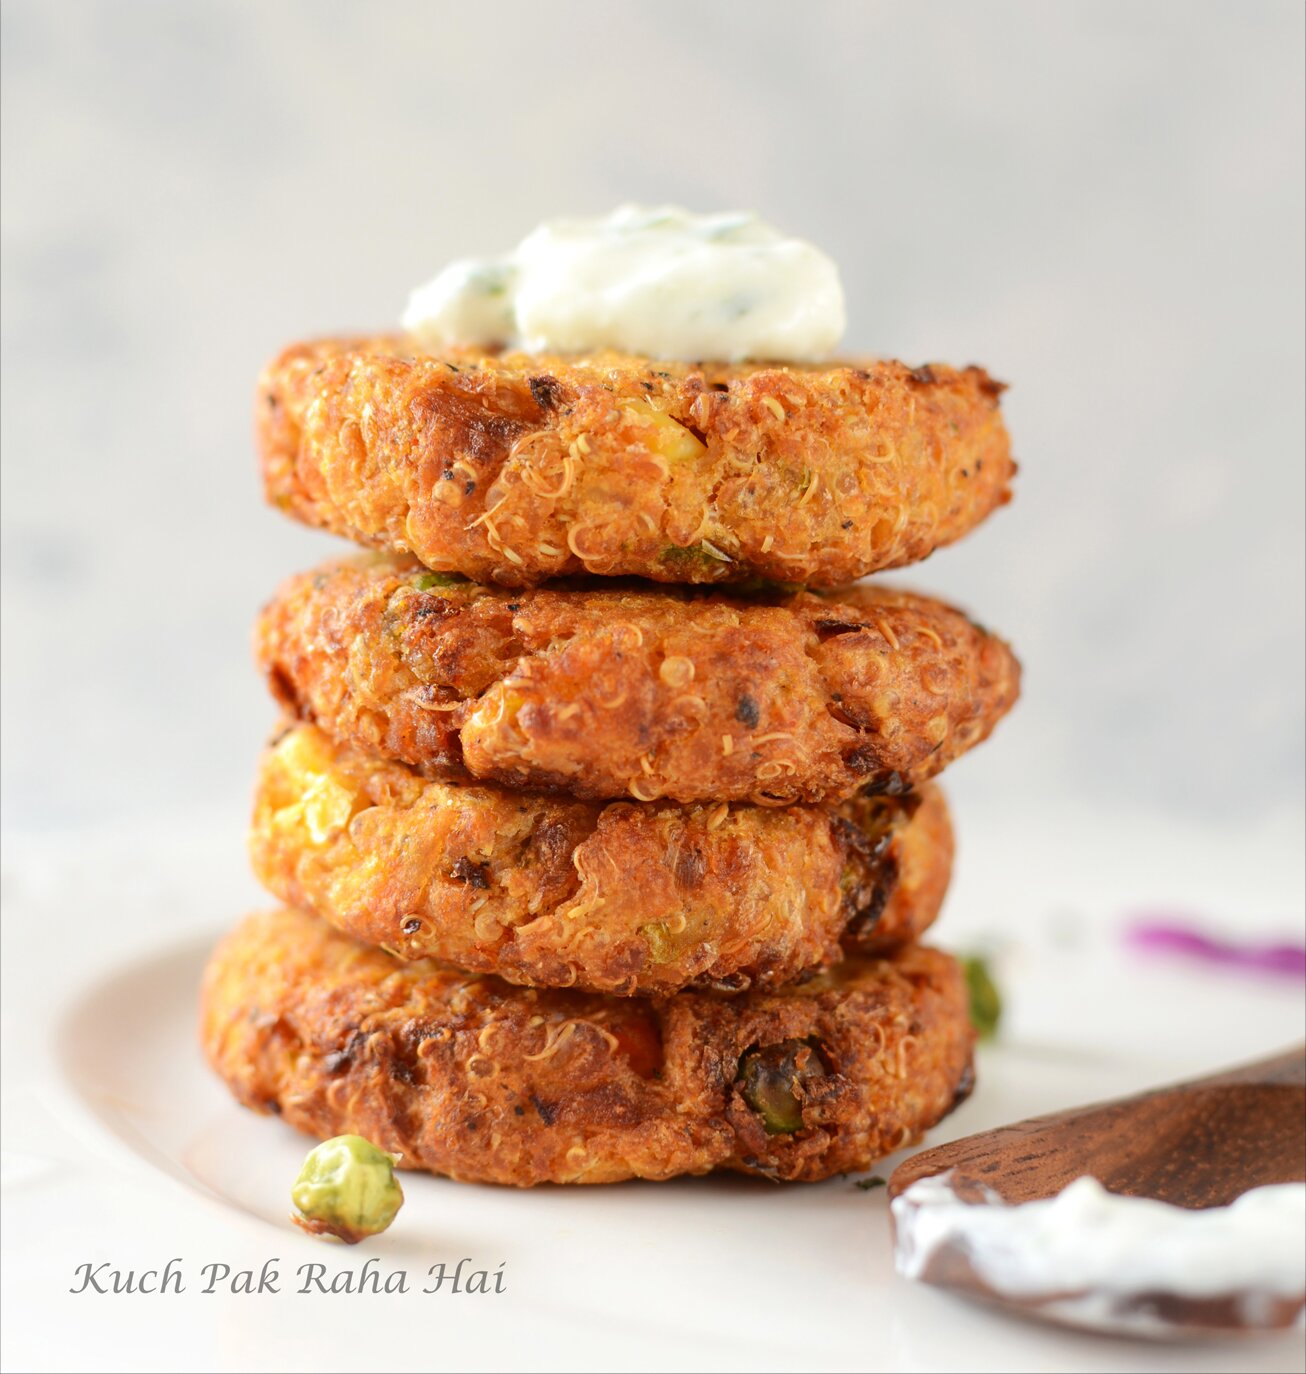 Crispy Quinoa Patties with Yoghurt Dip